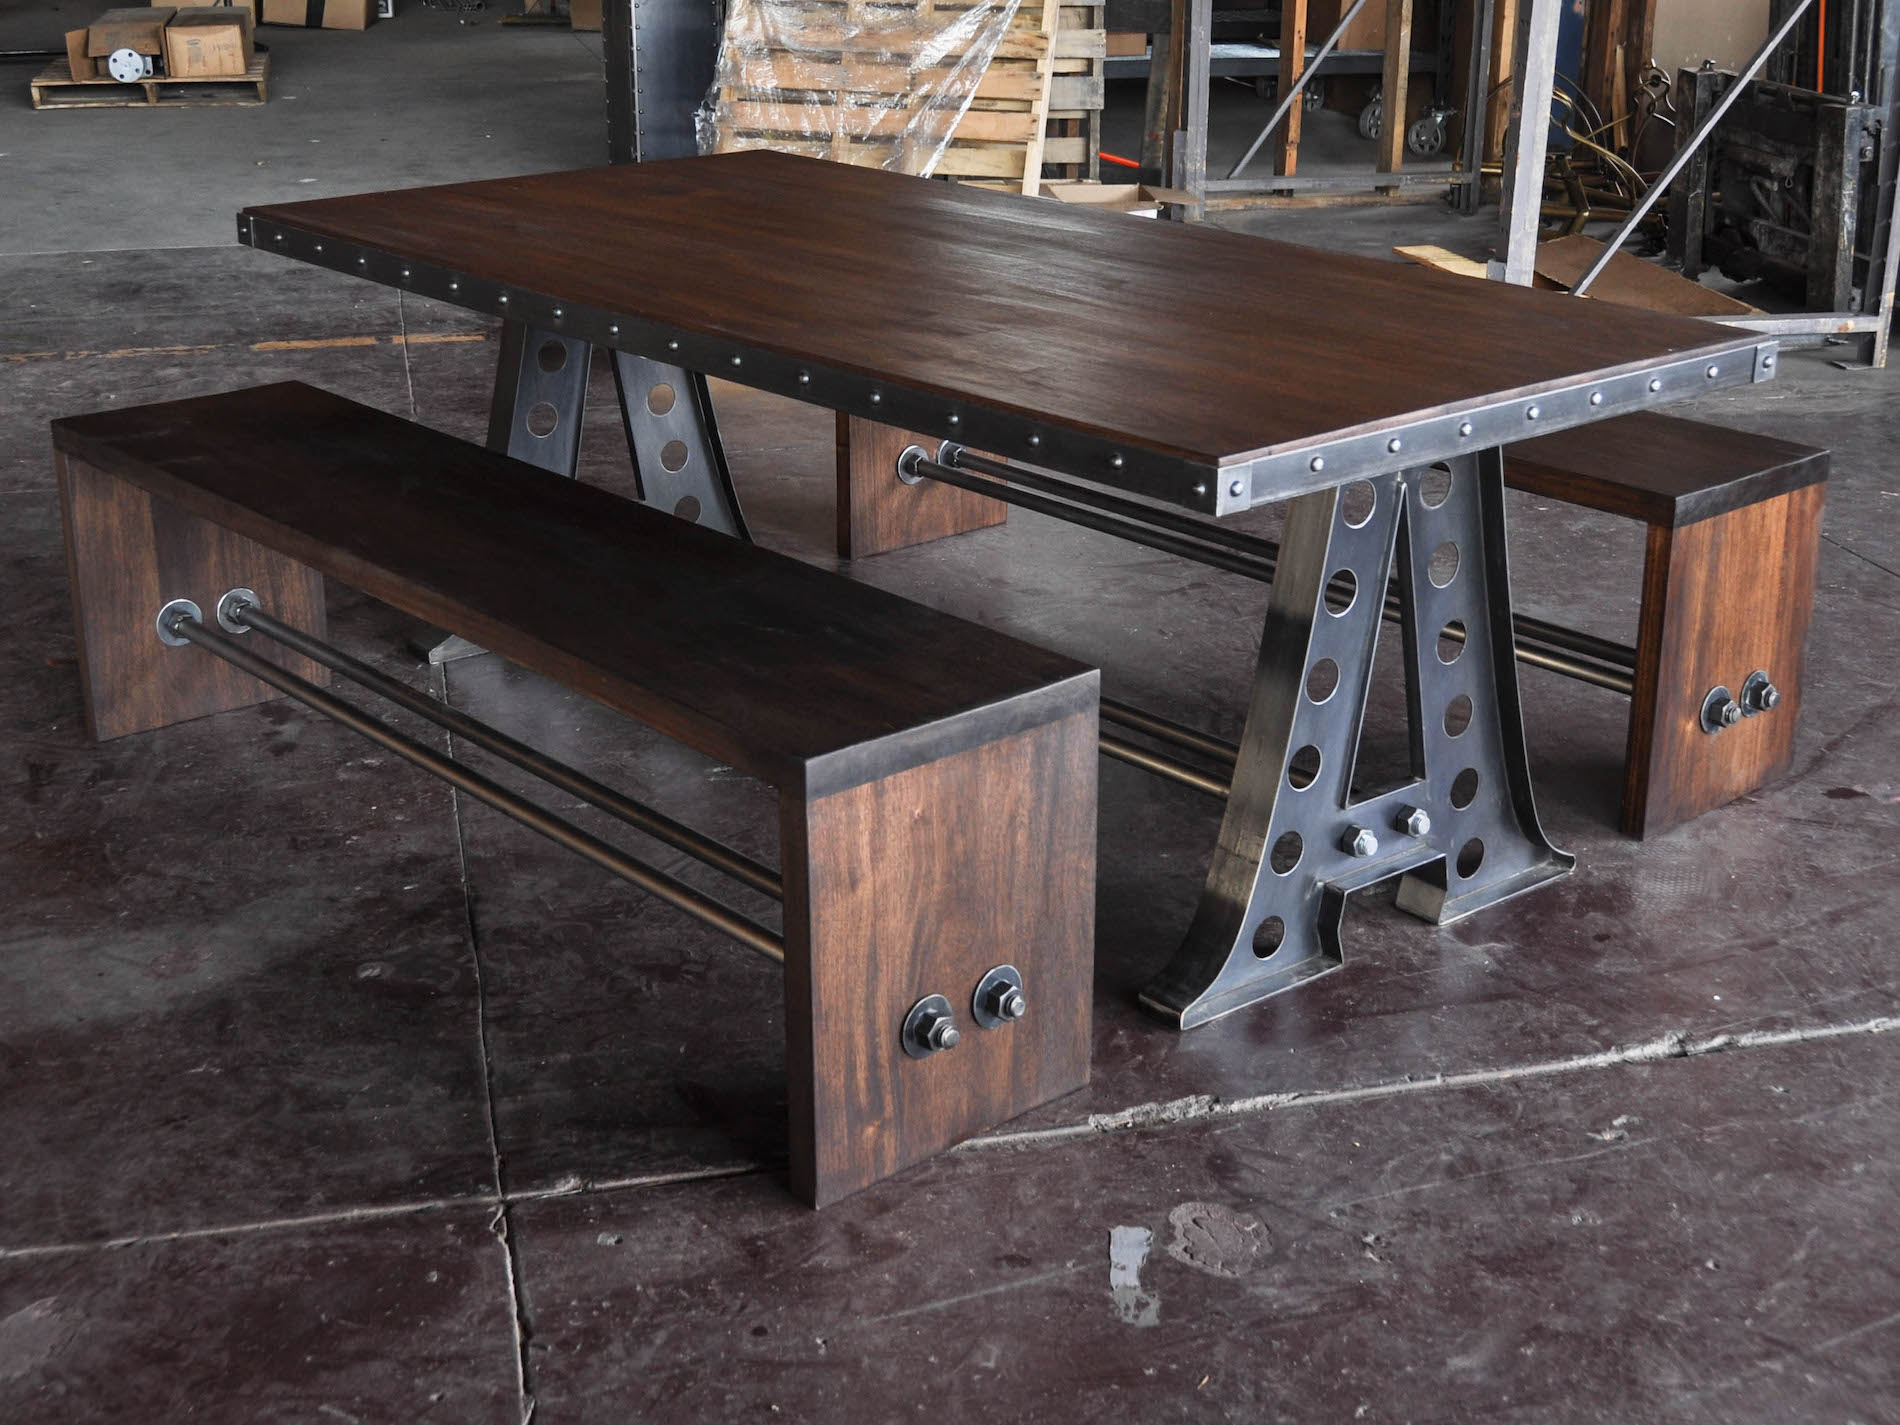 Industrial Benches For Sitting A Frame Dining Table Vintage Industrial Furniture